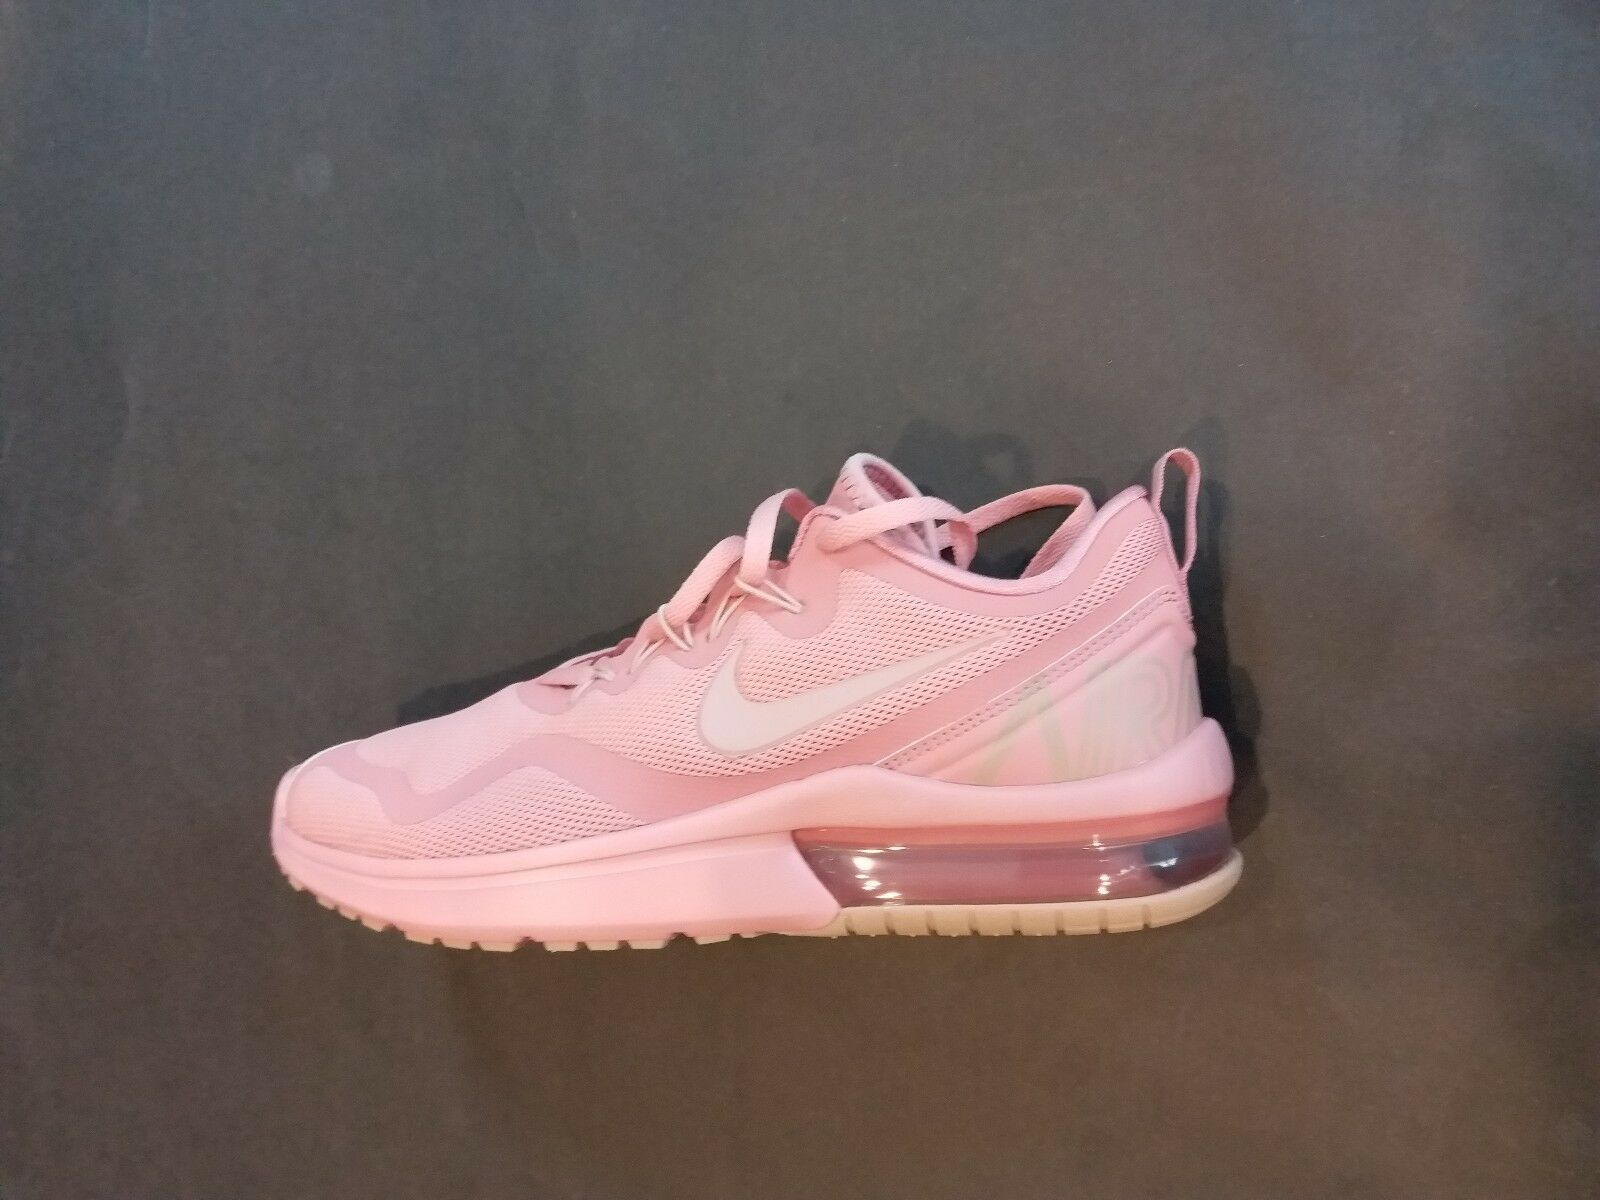 Nike femmes  Air Max Fury running sneakers NEW rust rose sand AA5740-601 SZ-9.5